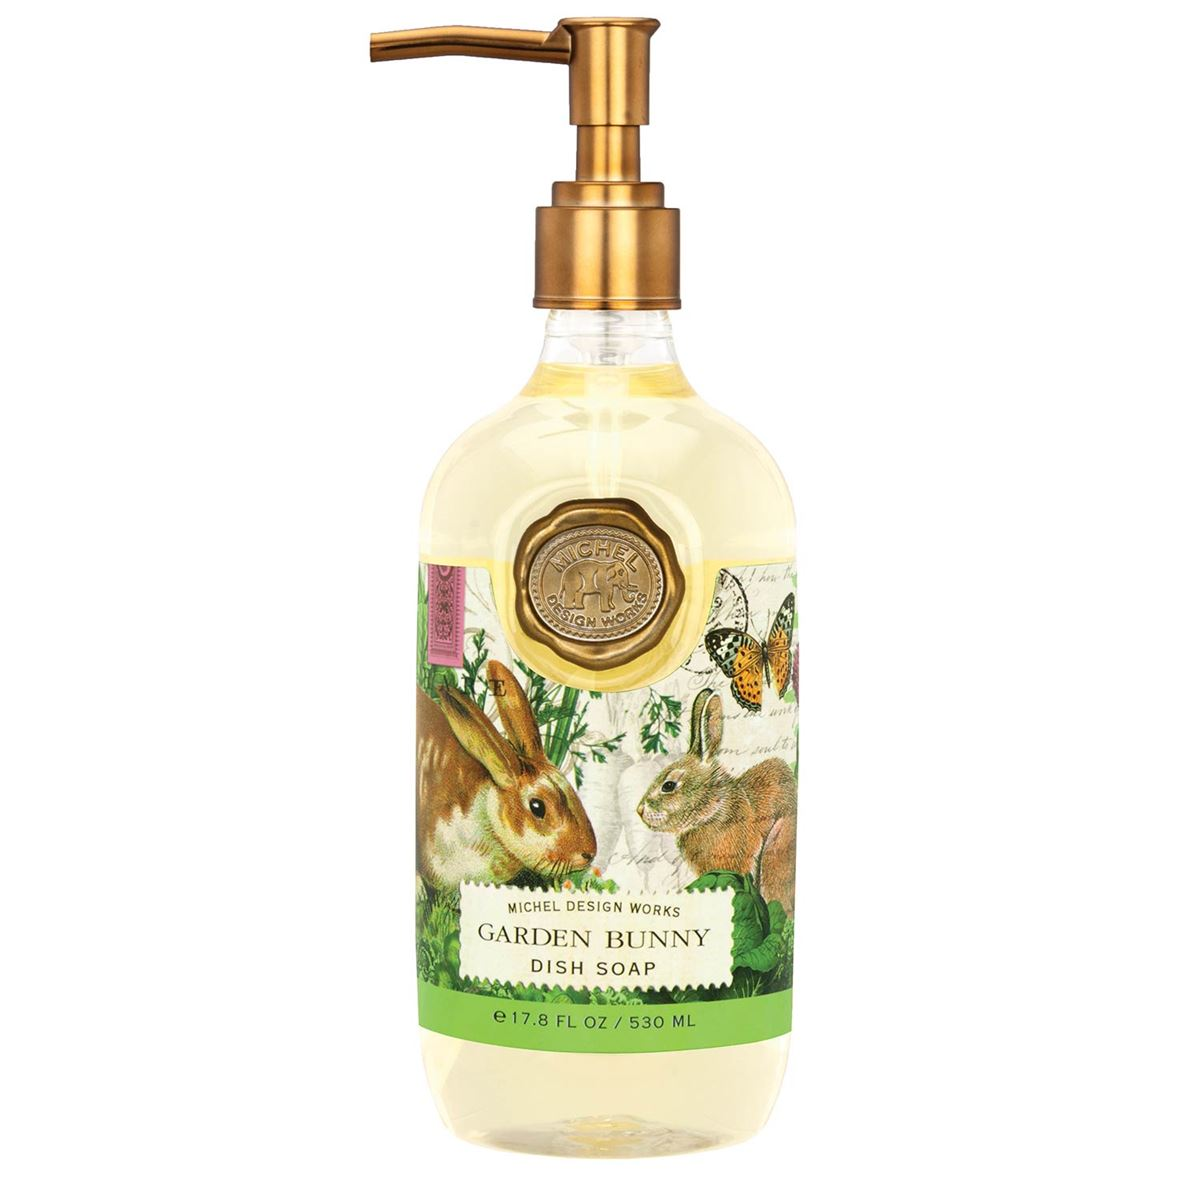 Michel Design Works Garden Bunny Dish Soap